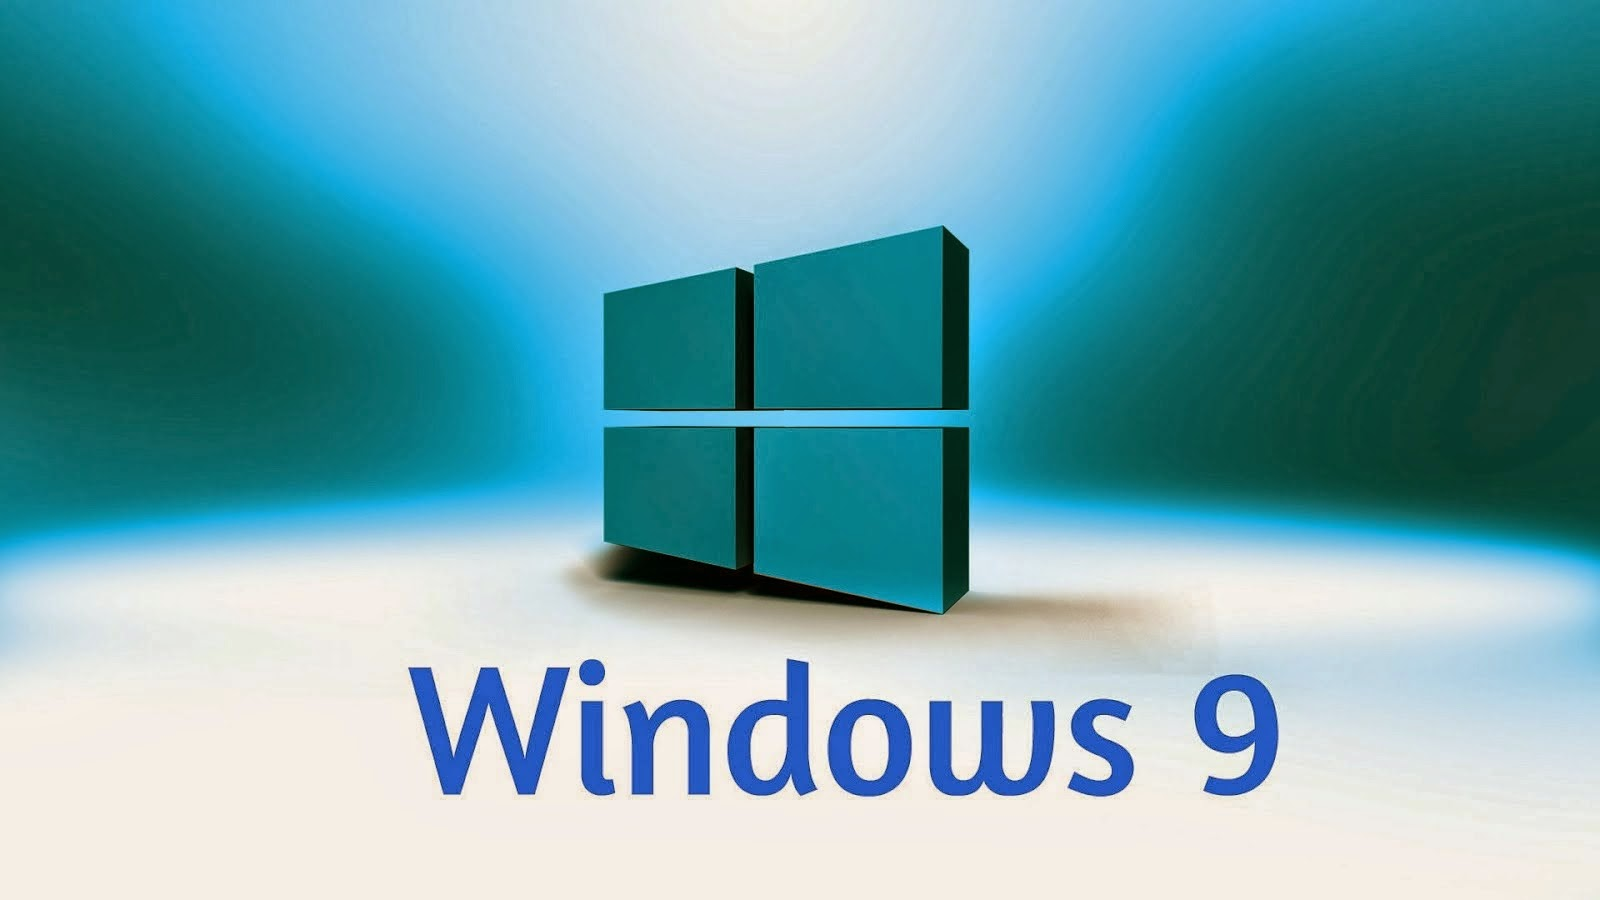 Wallpaper Windows 9 Full HDWallpaper Windows 9 Full HD